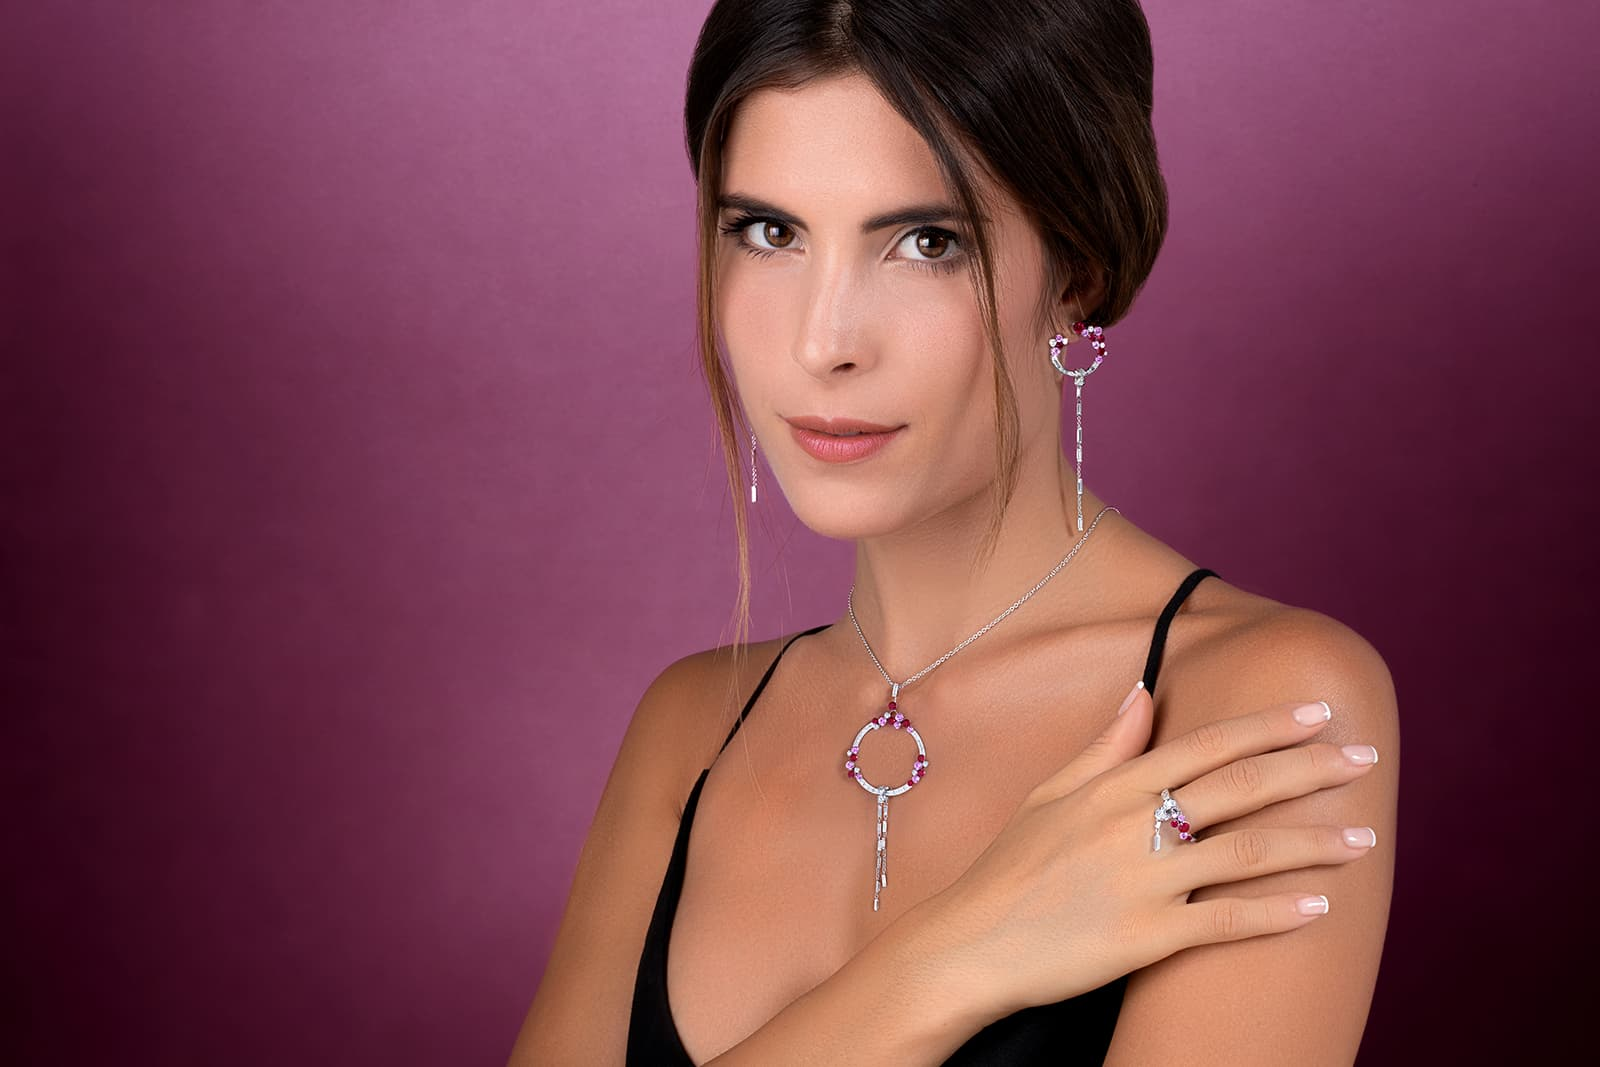 Stenzhorn 'Una' earrings, necklace and ring, all with diamonds, rubies and pink sapphires in white gold